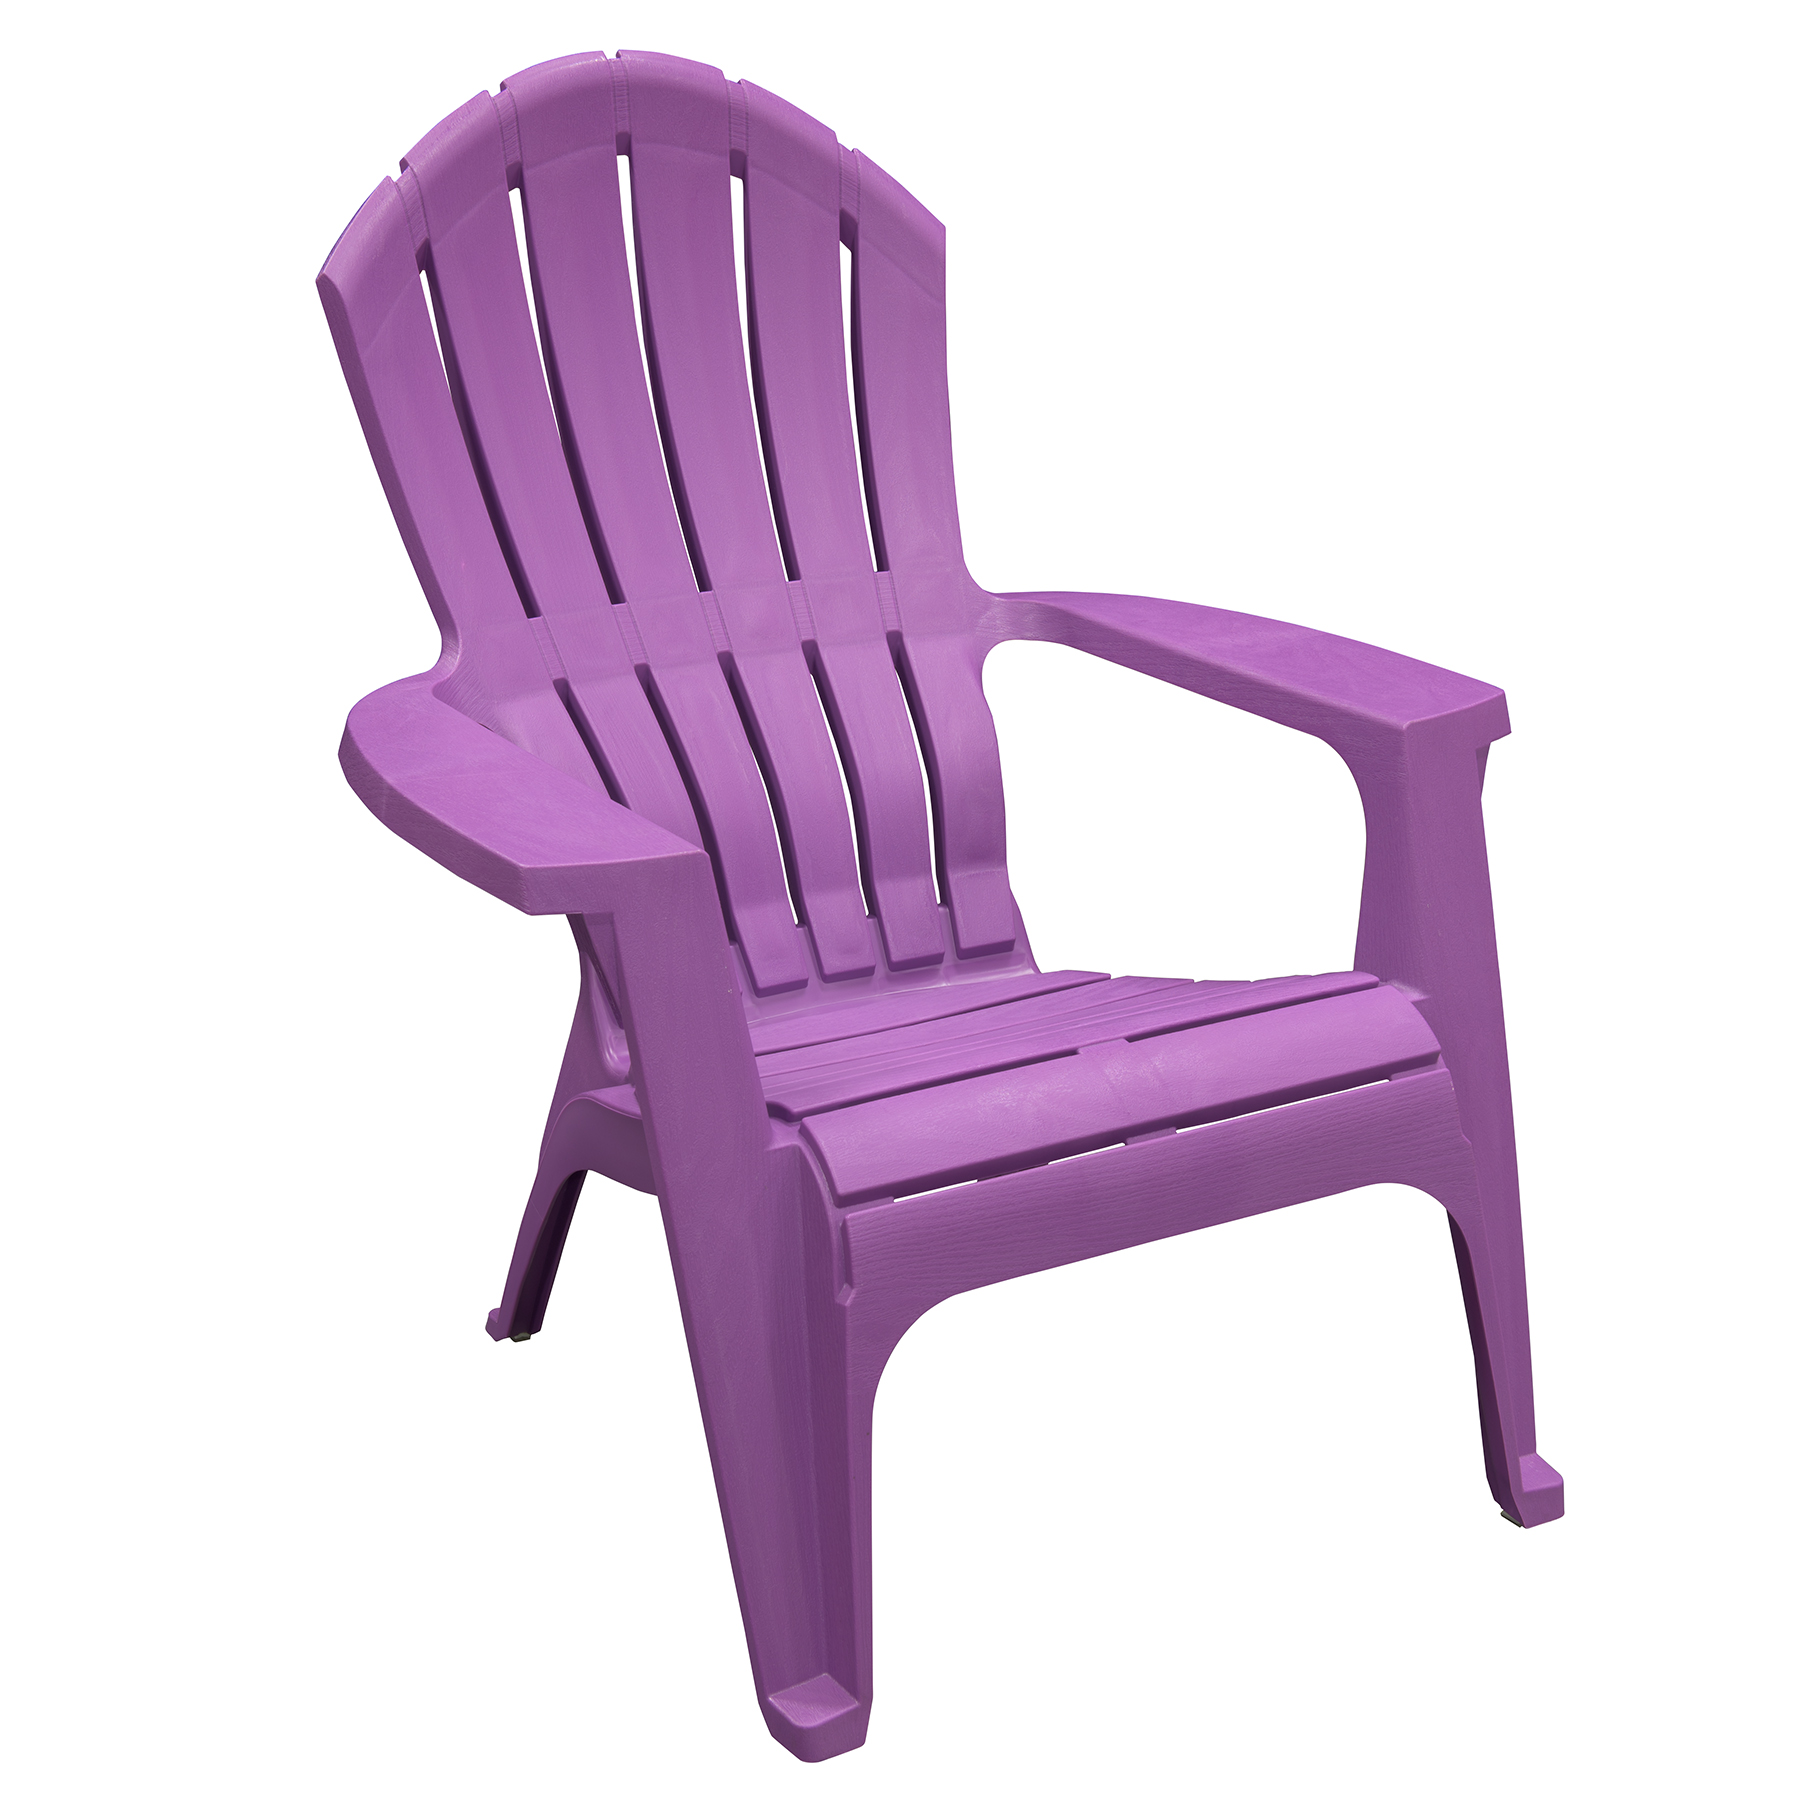 Adams RealComfort Adirondack Chair Bright Violet by Adams Manufacturing